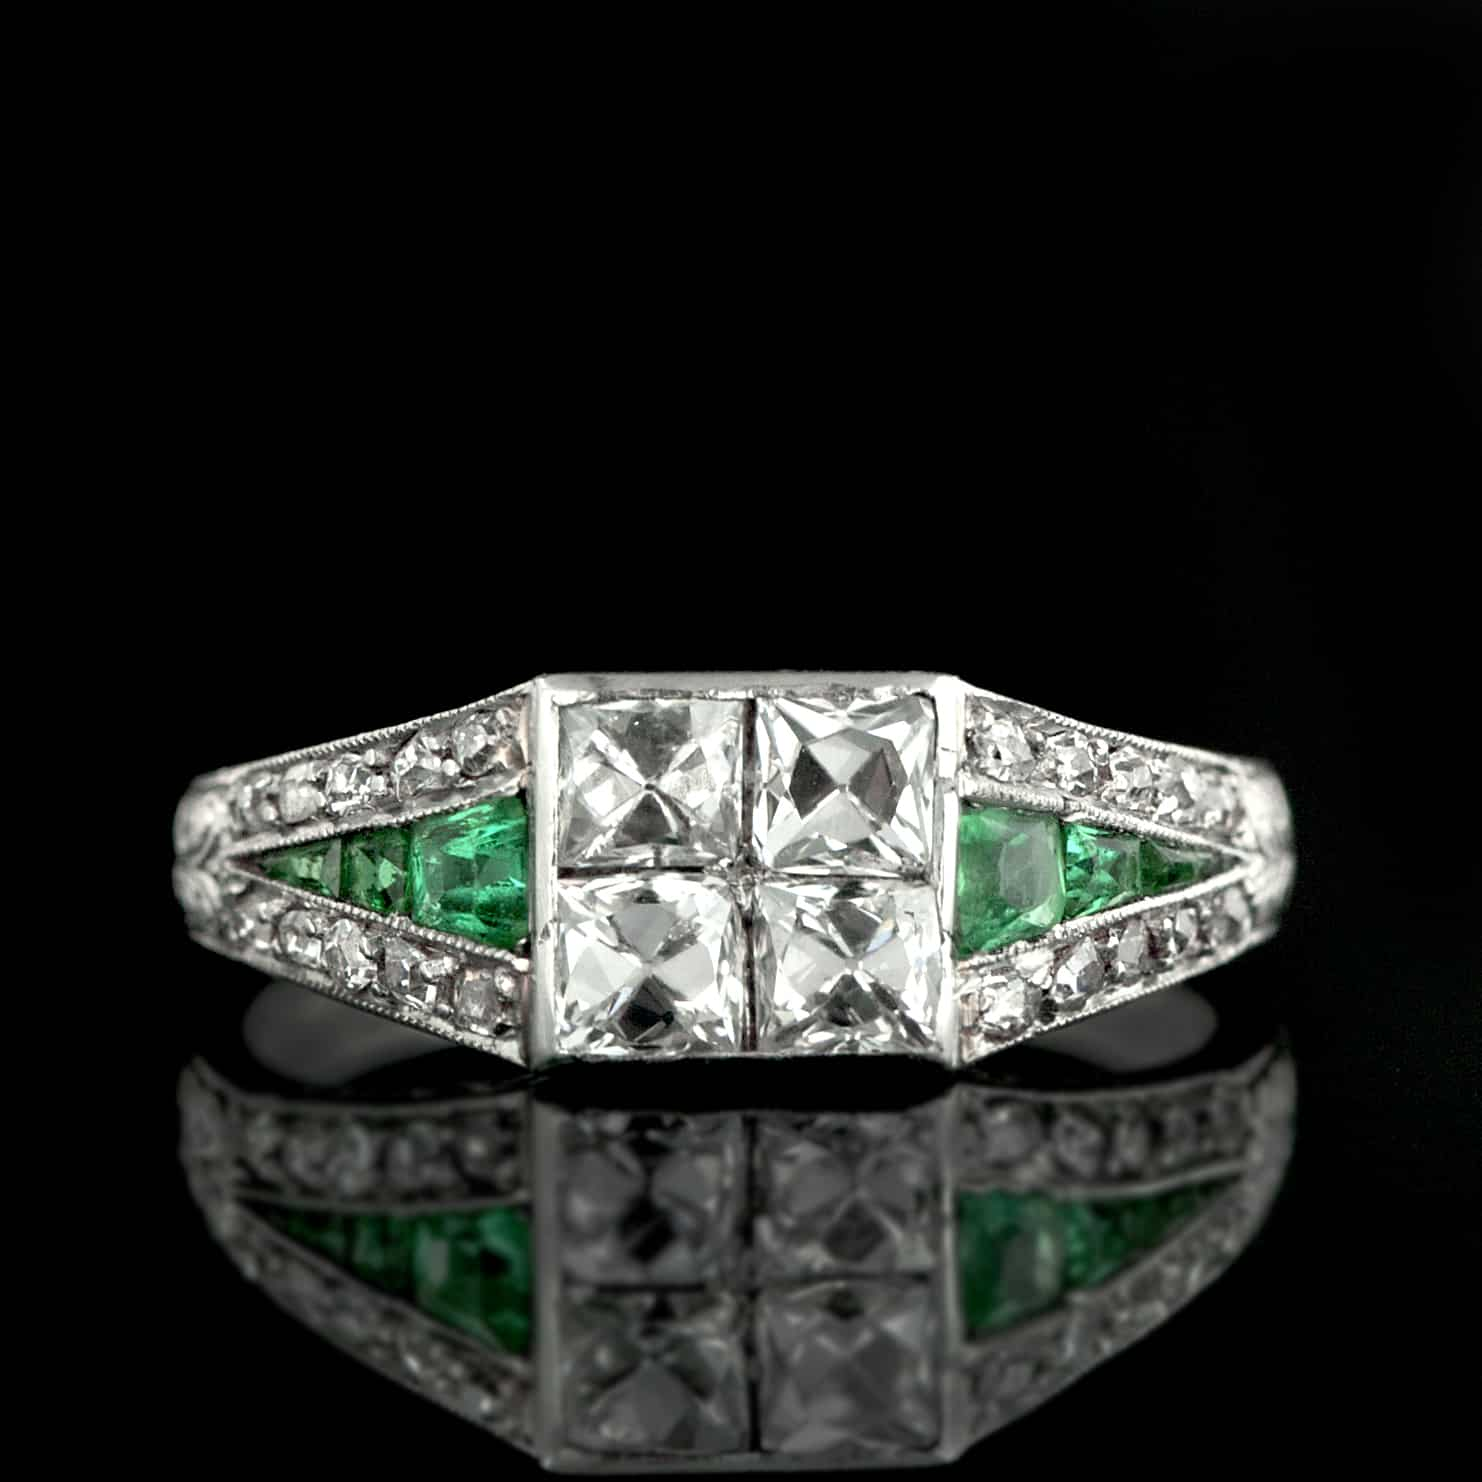 French cut diamonds in Art Deco ring.jpg